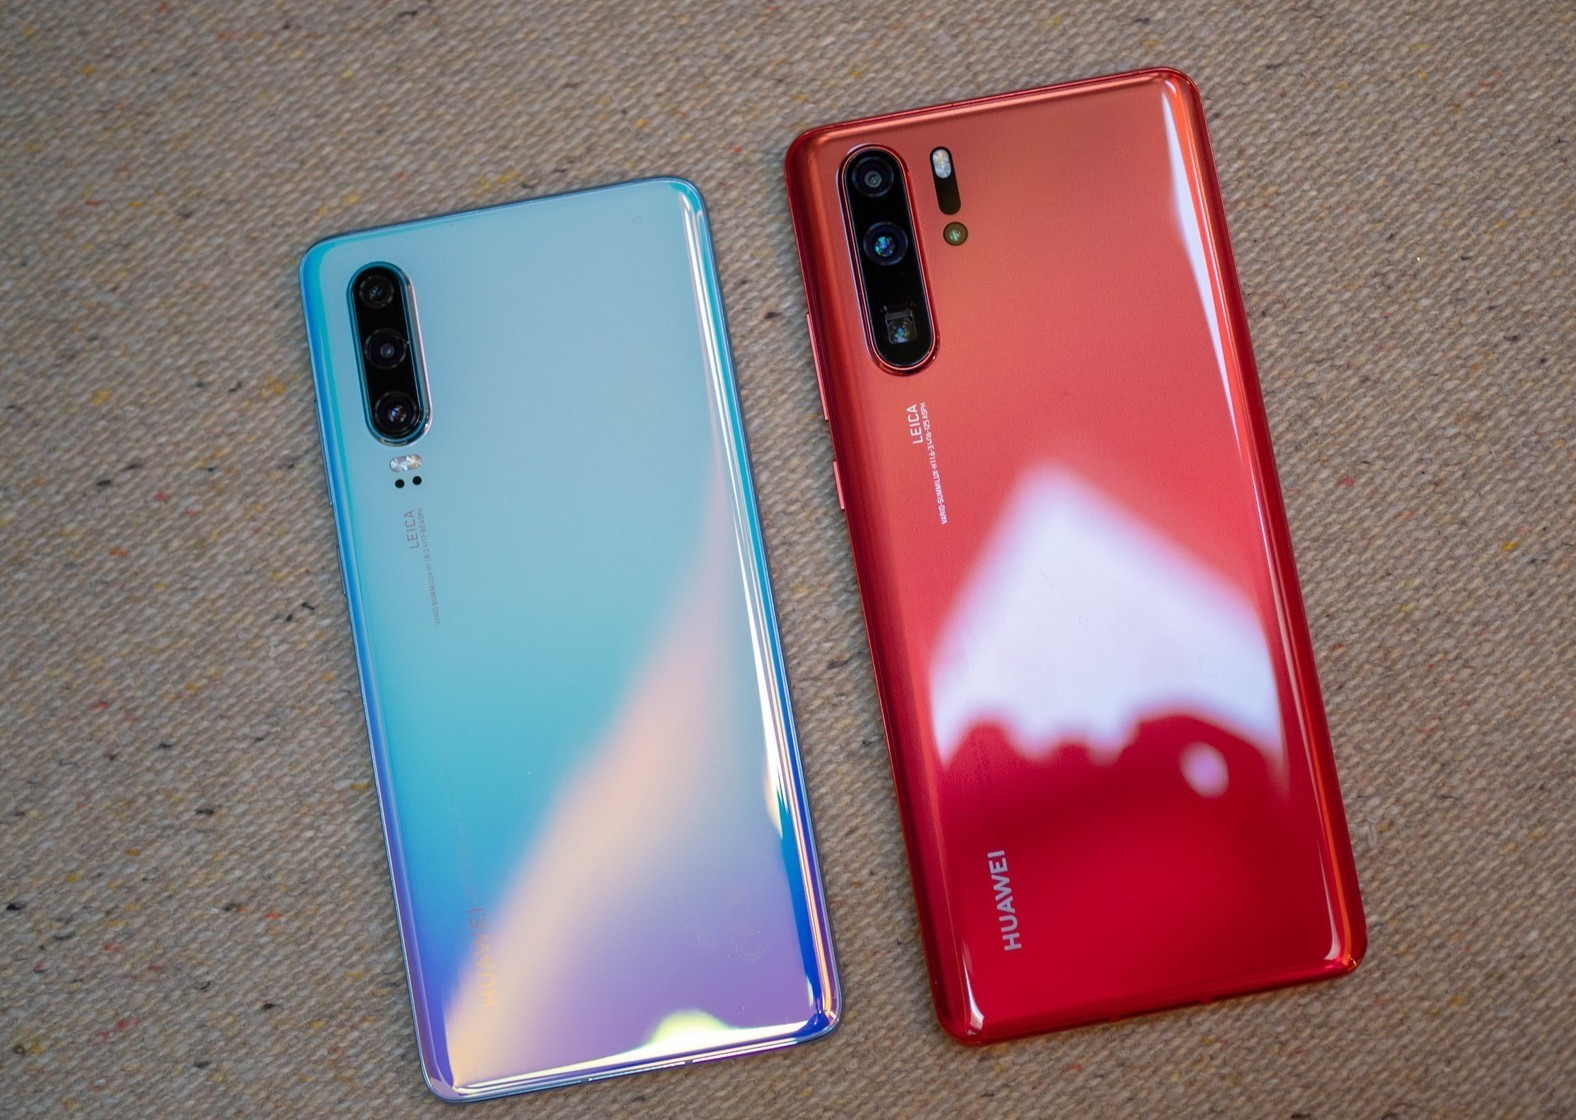 Huawei P30 Pro dethrones Galaxy S10 Plus to become the new DXOMARK camera king